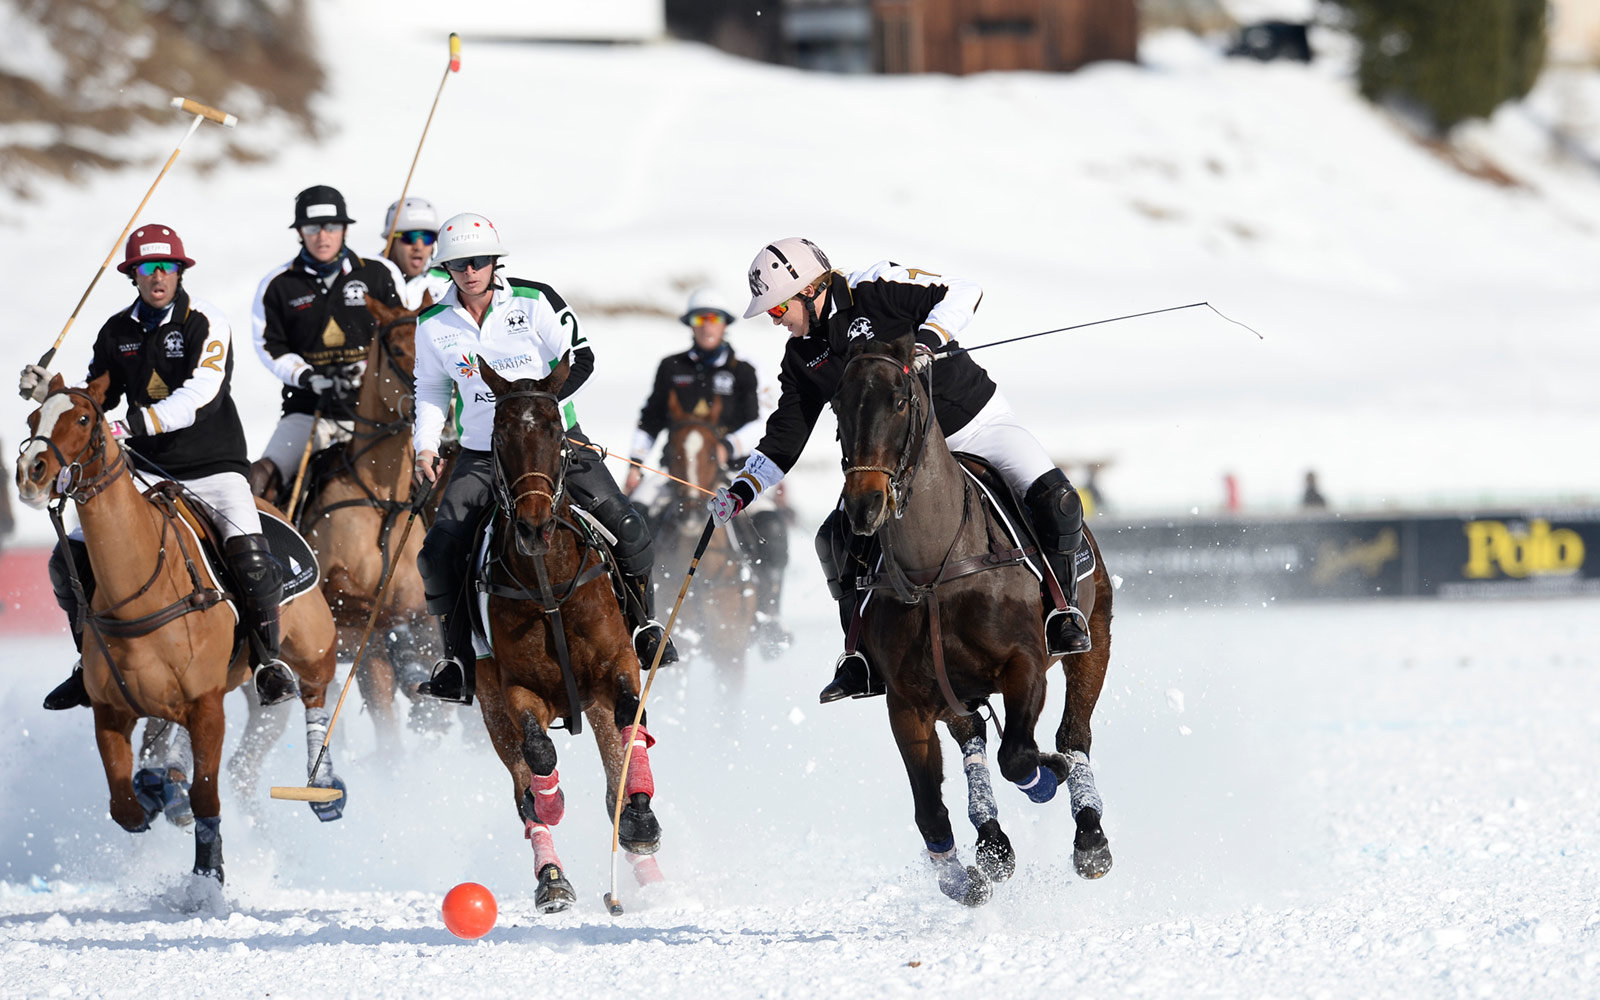 Snow Polo Tournament, St. Moritz, Switzerland